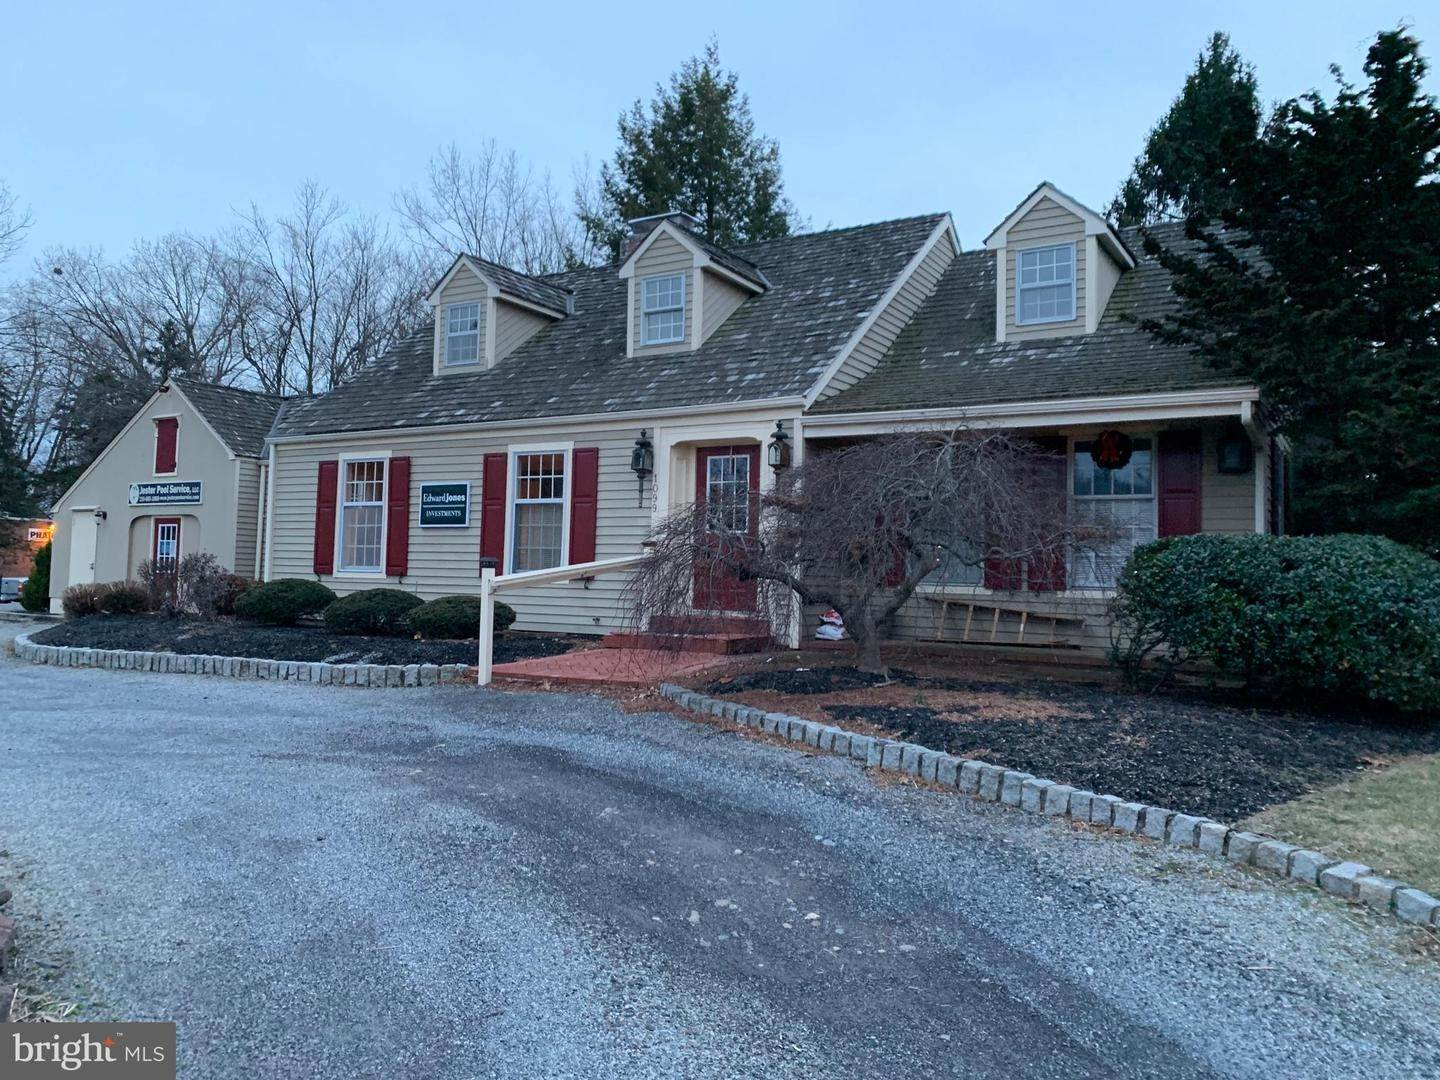 Property for Sale at 1099 GENERAL KNOX Road Washington Crossing, Pennsylvania 18977 United States